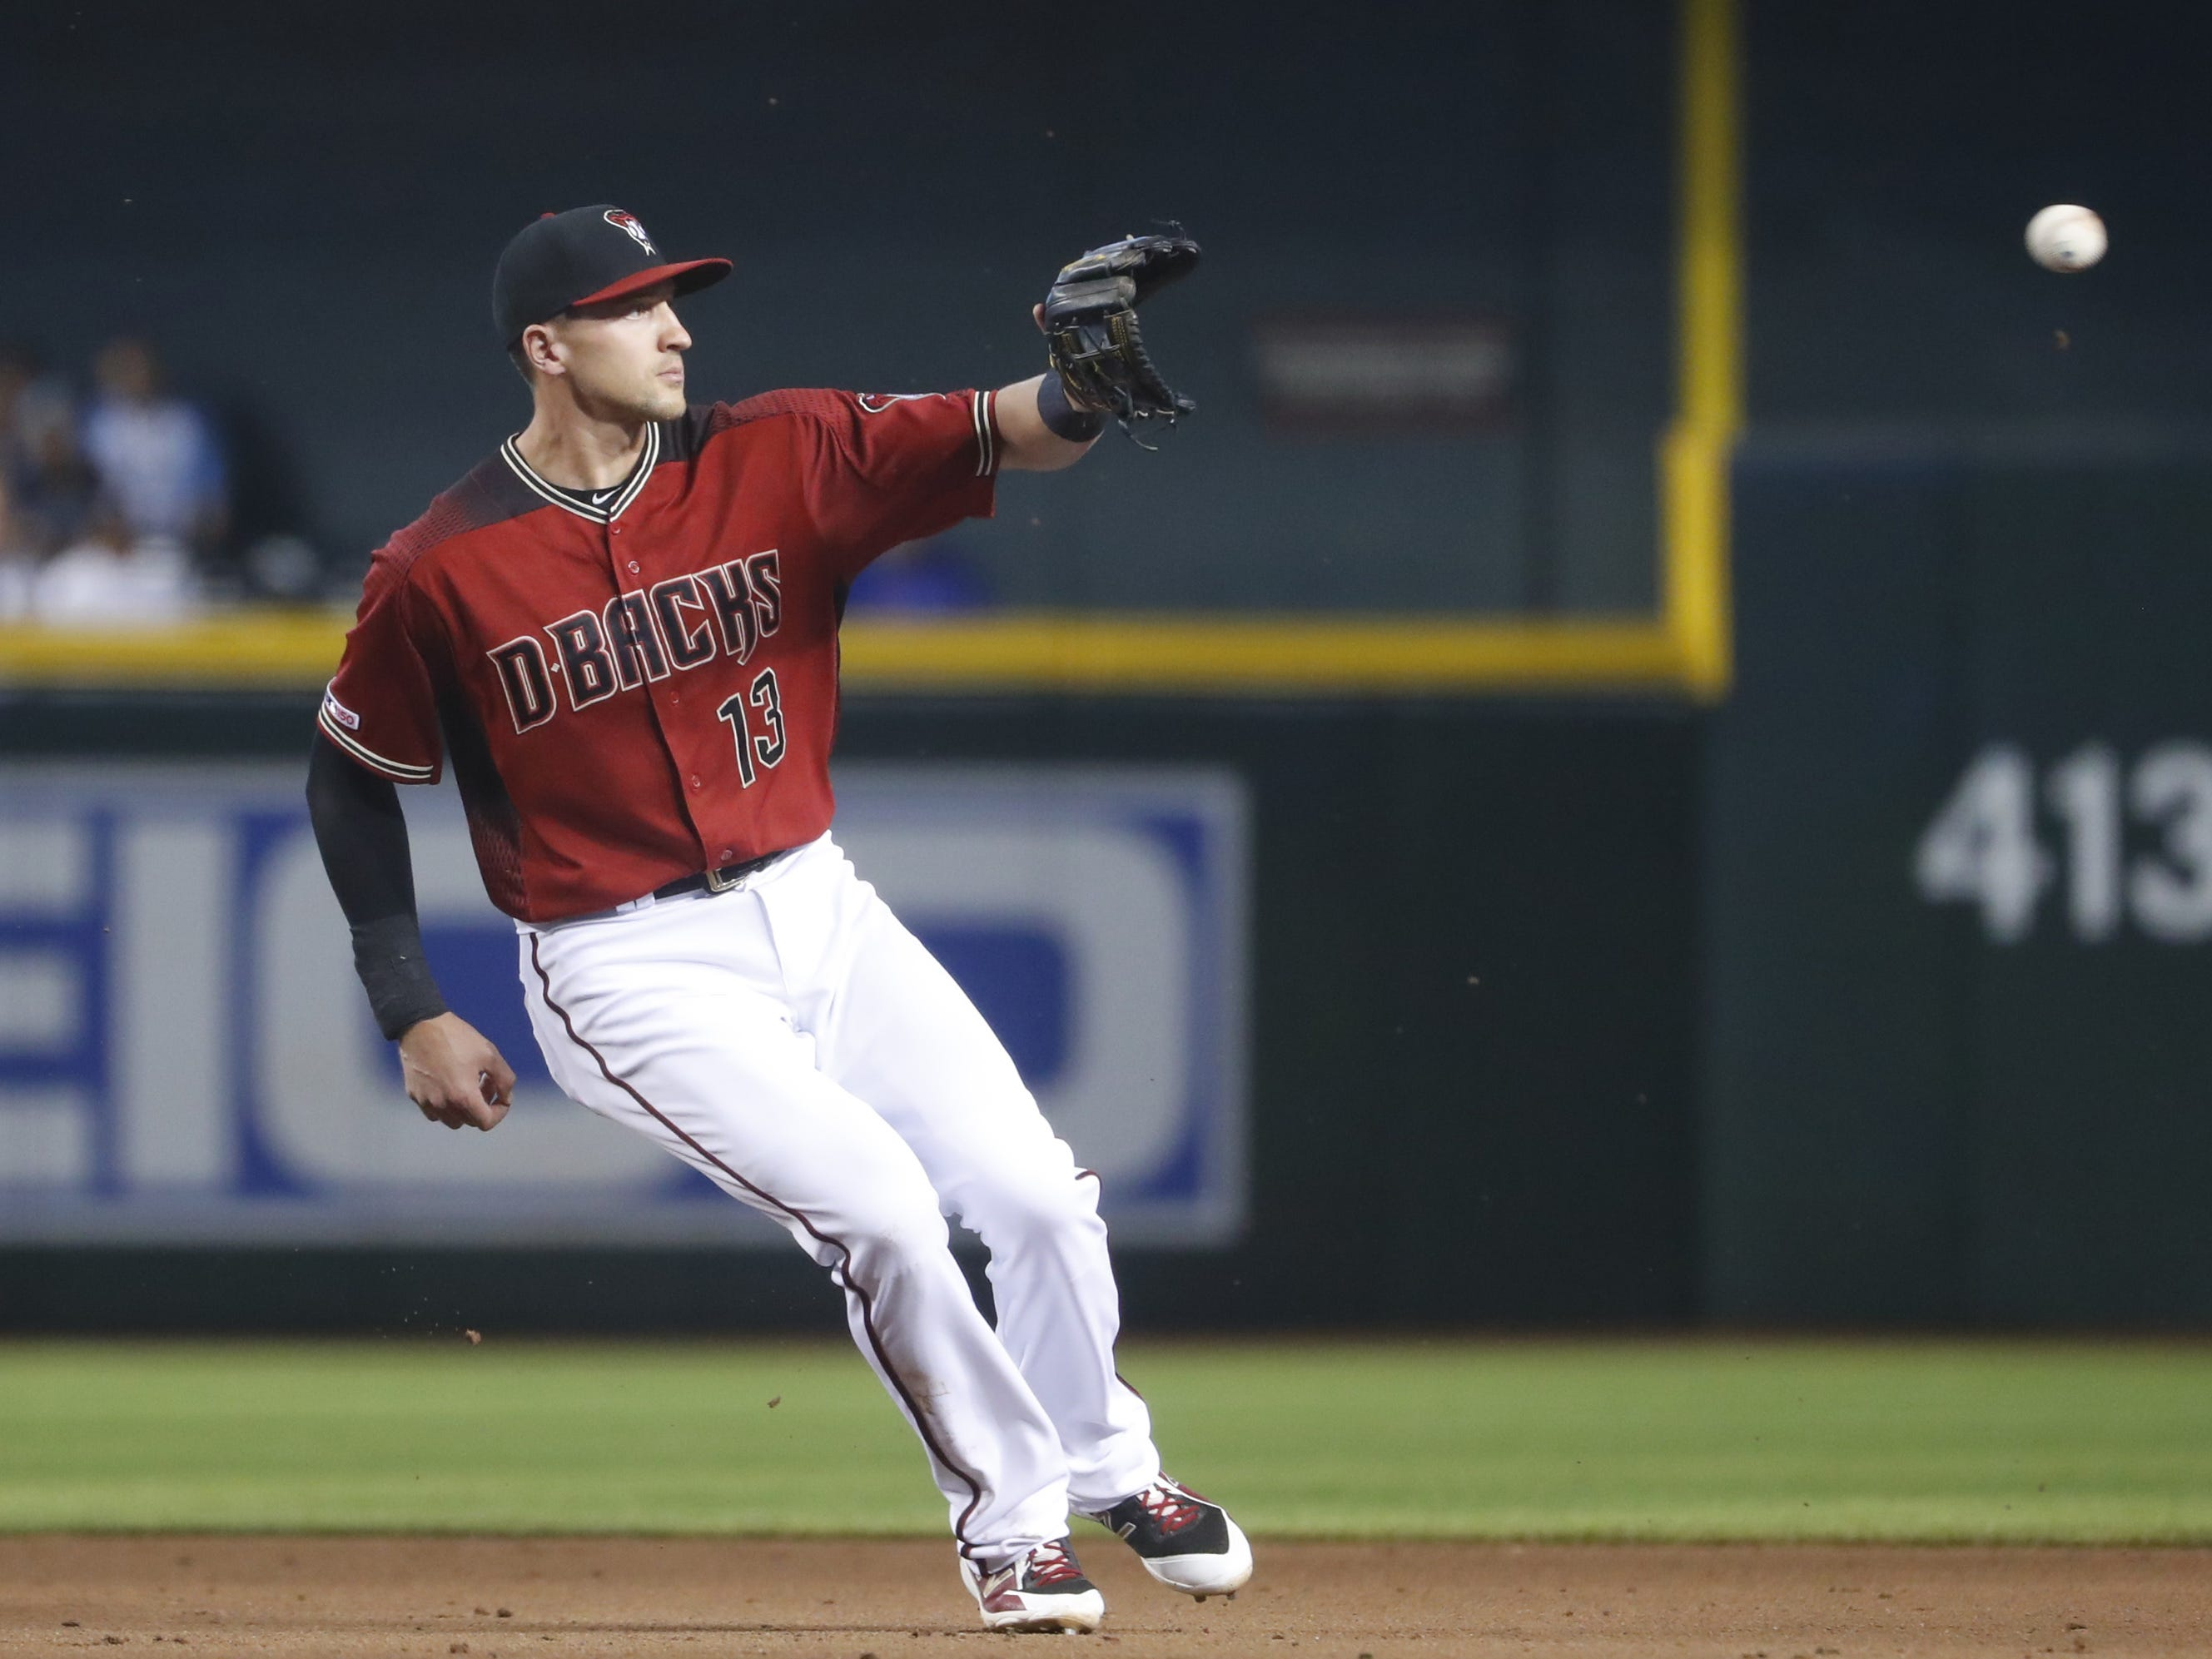 Diamondbacks' Nick Ahmed (13) catches a throw from the outfield during the fifth inning against the Cubs at Chase Field in Phoenix, Ariz. on April 28, 2019.